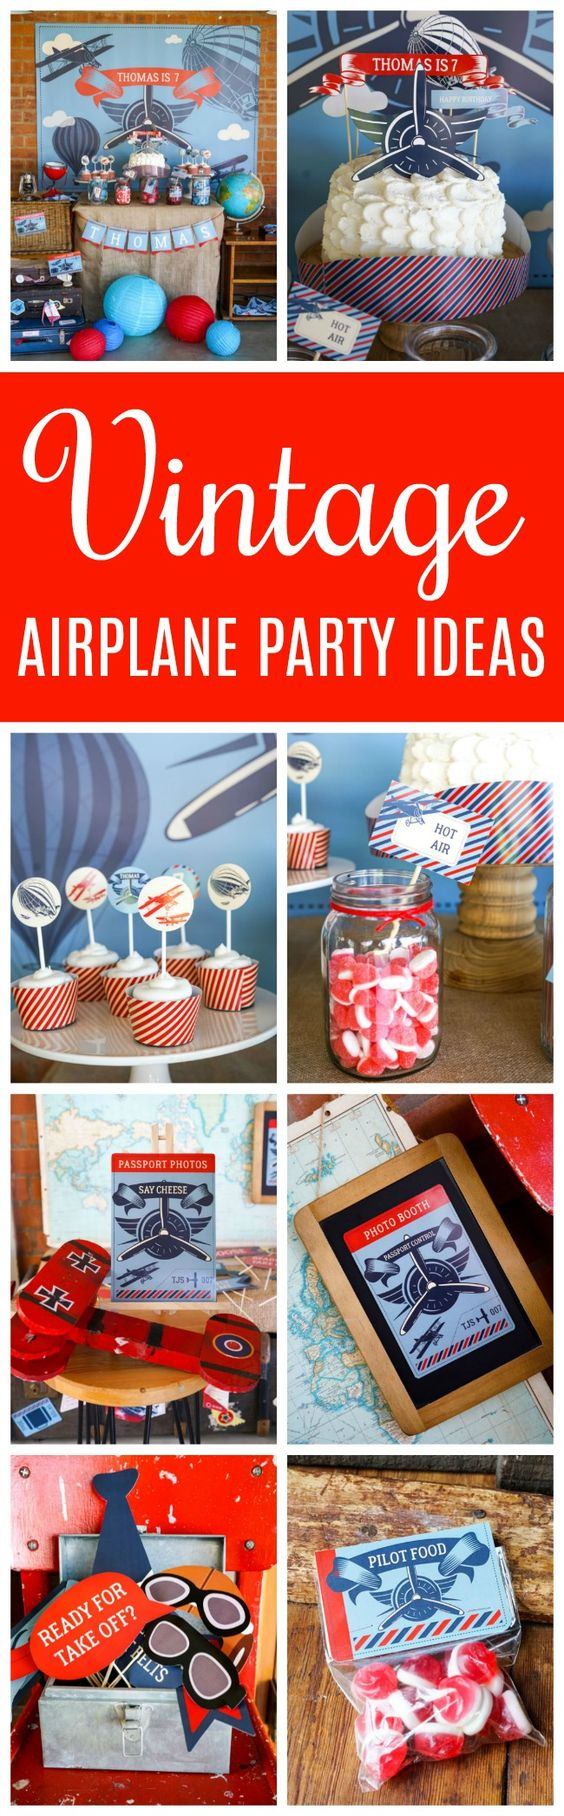 Vintage Airplane Birthday Party - Airplane Birthday Party Ideas